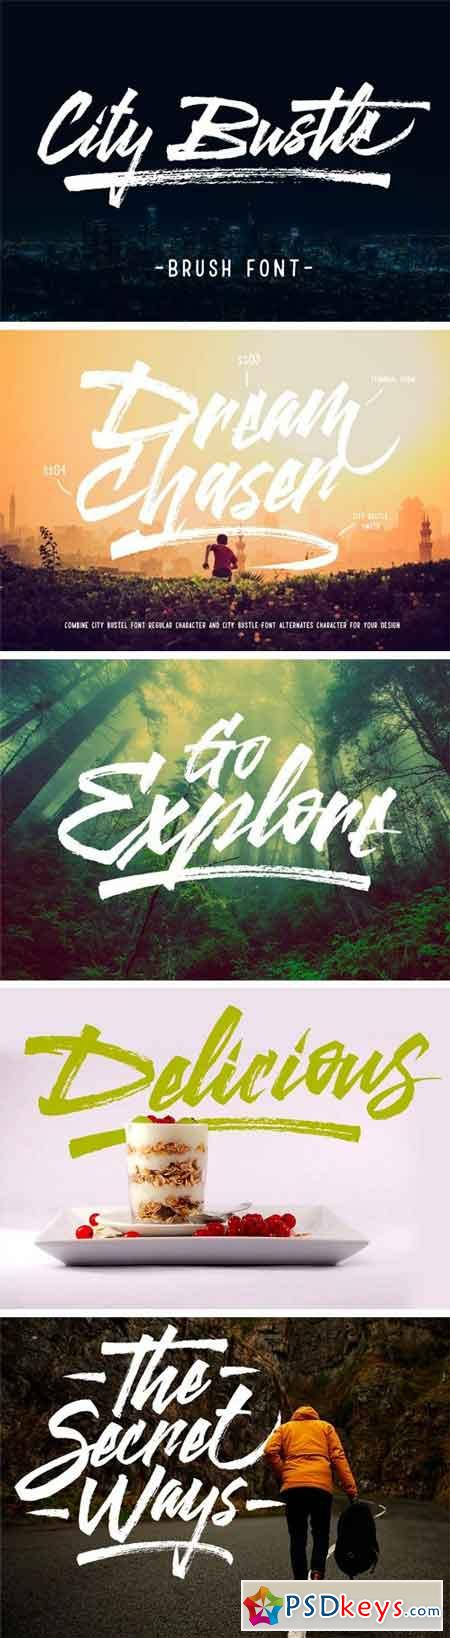 City Bustle Brush Font 1294638